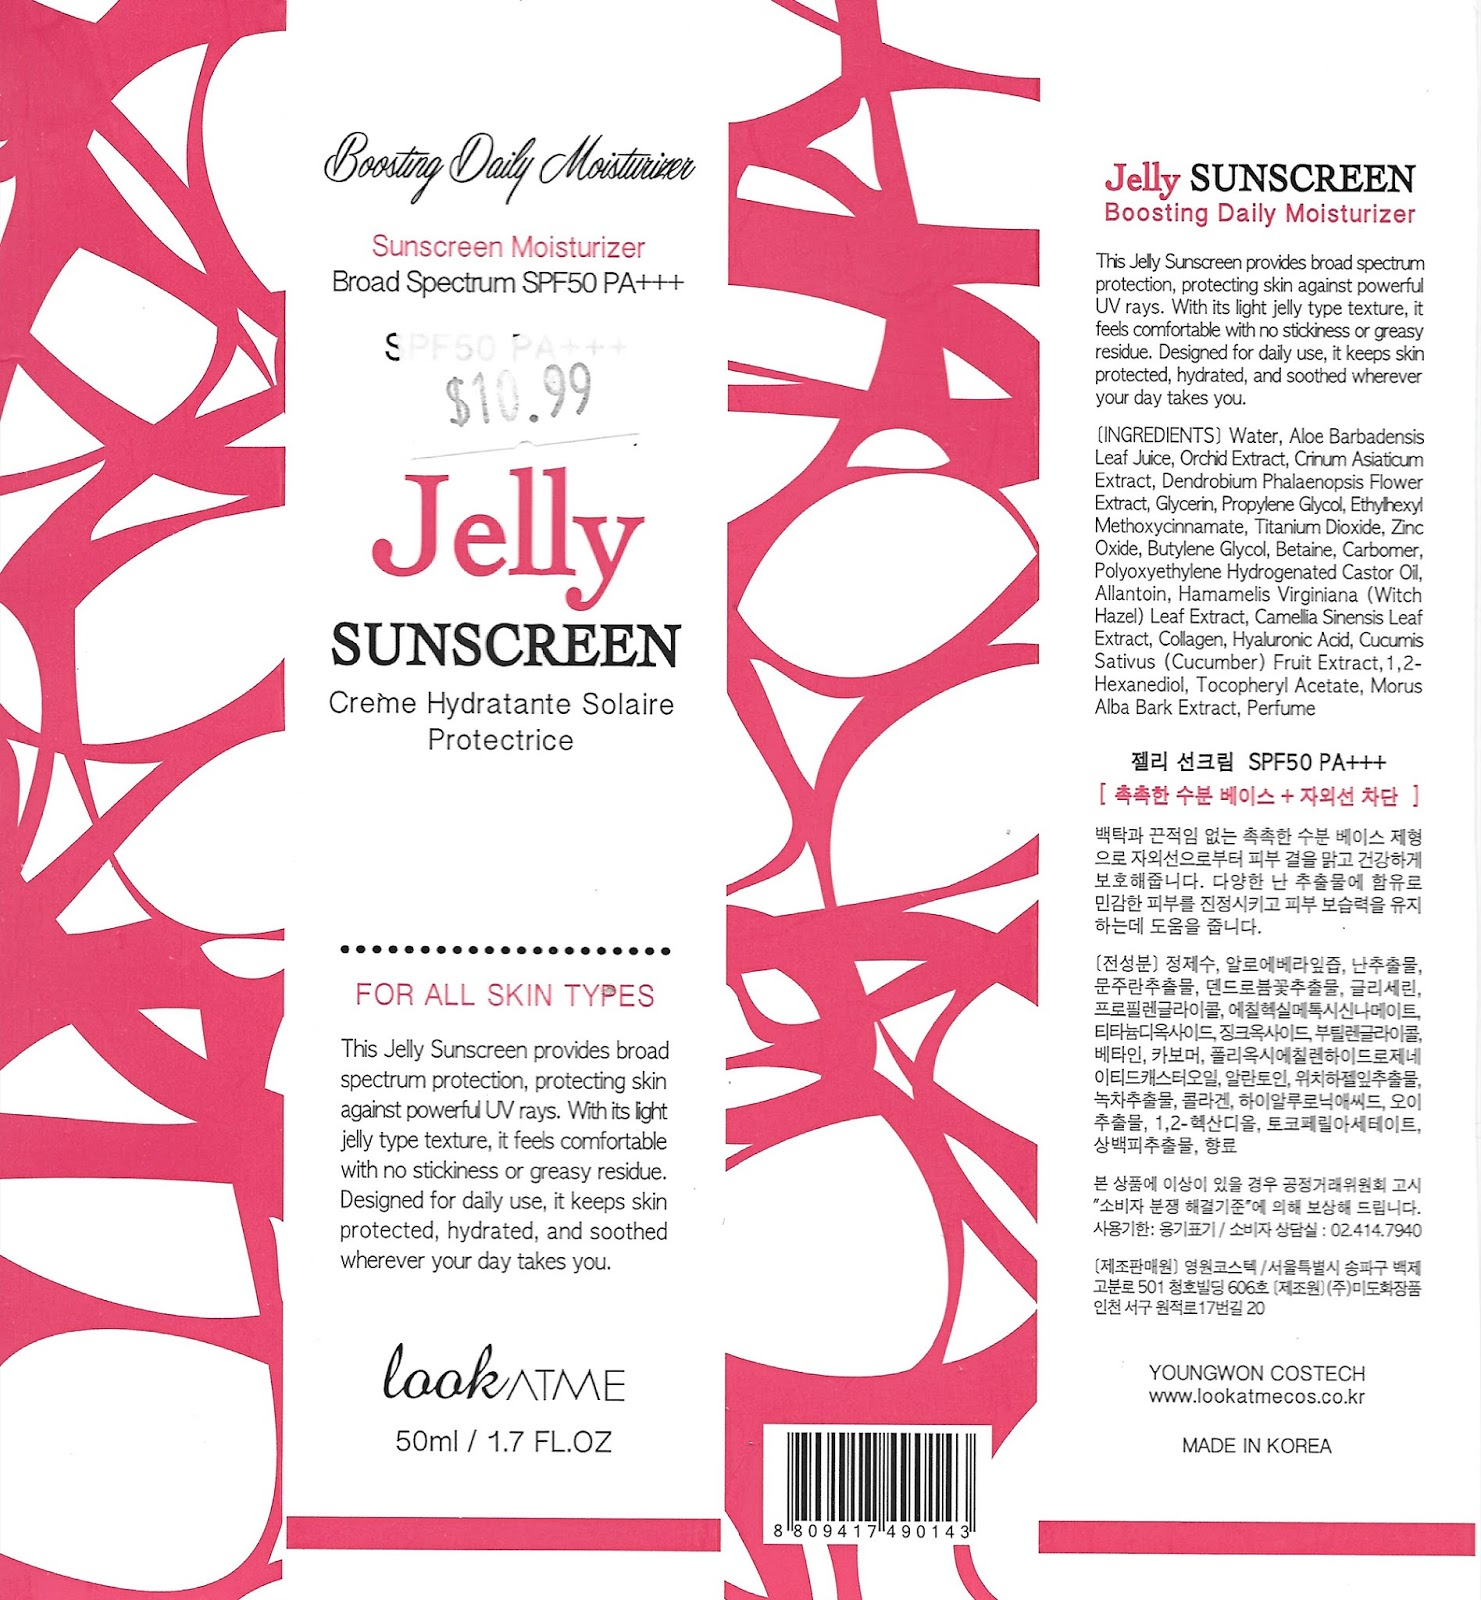 lavlilacs Look At Me Jelly Sunscreen SPF50 packaging